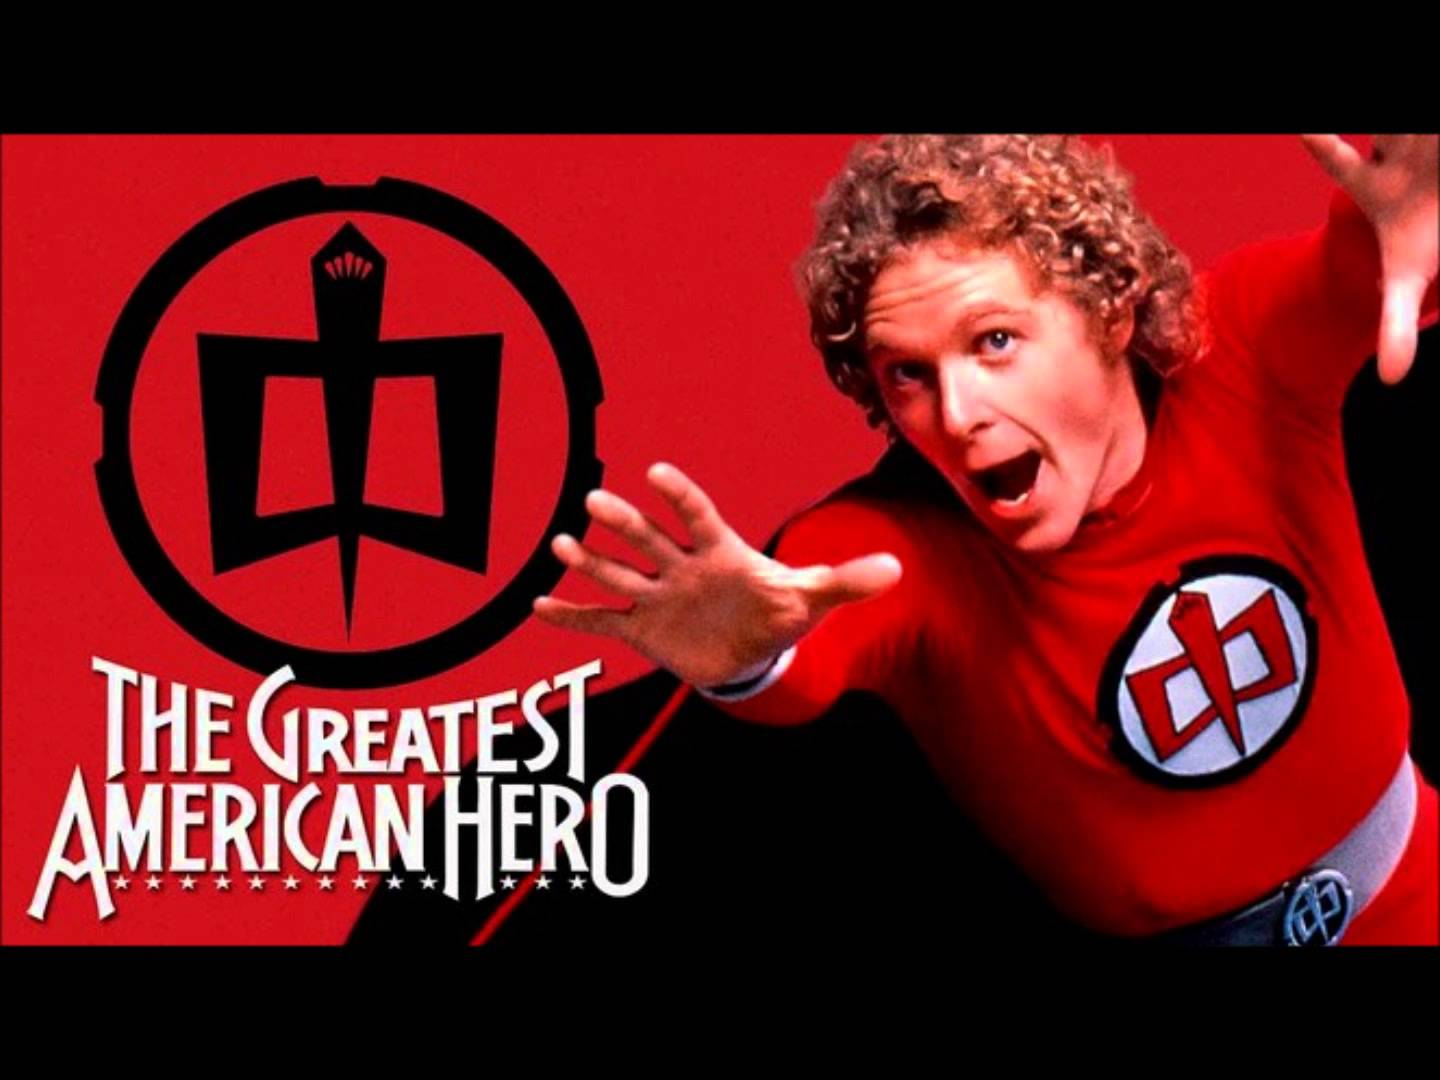 GreatestAmericanHero